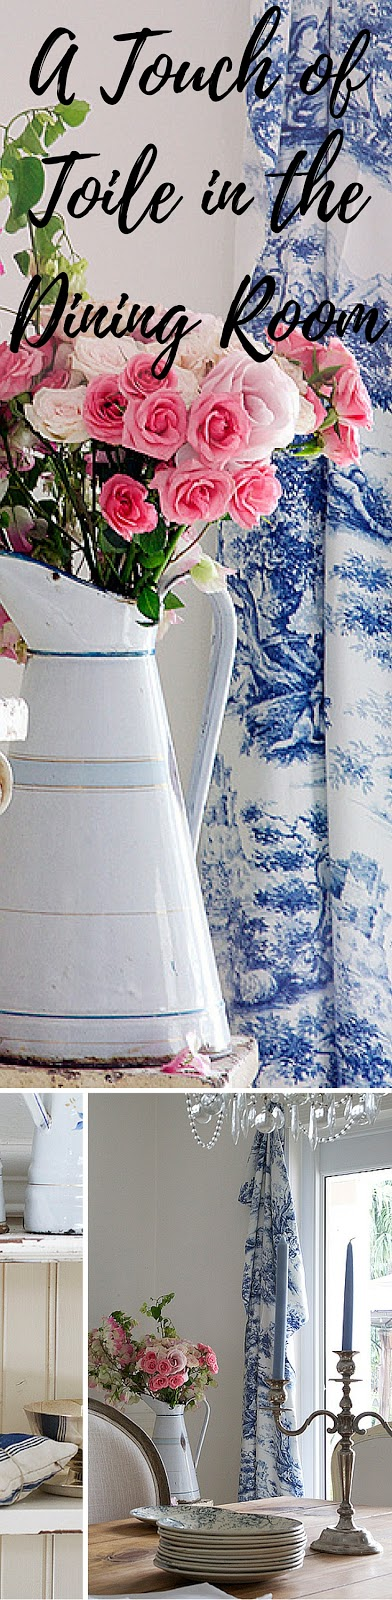 Decorating with toile - a touch of toile in the dining room